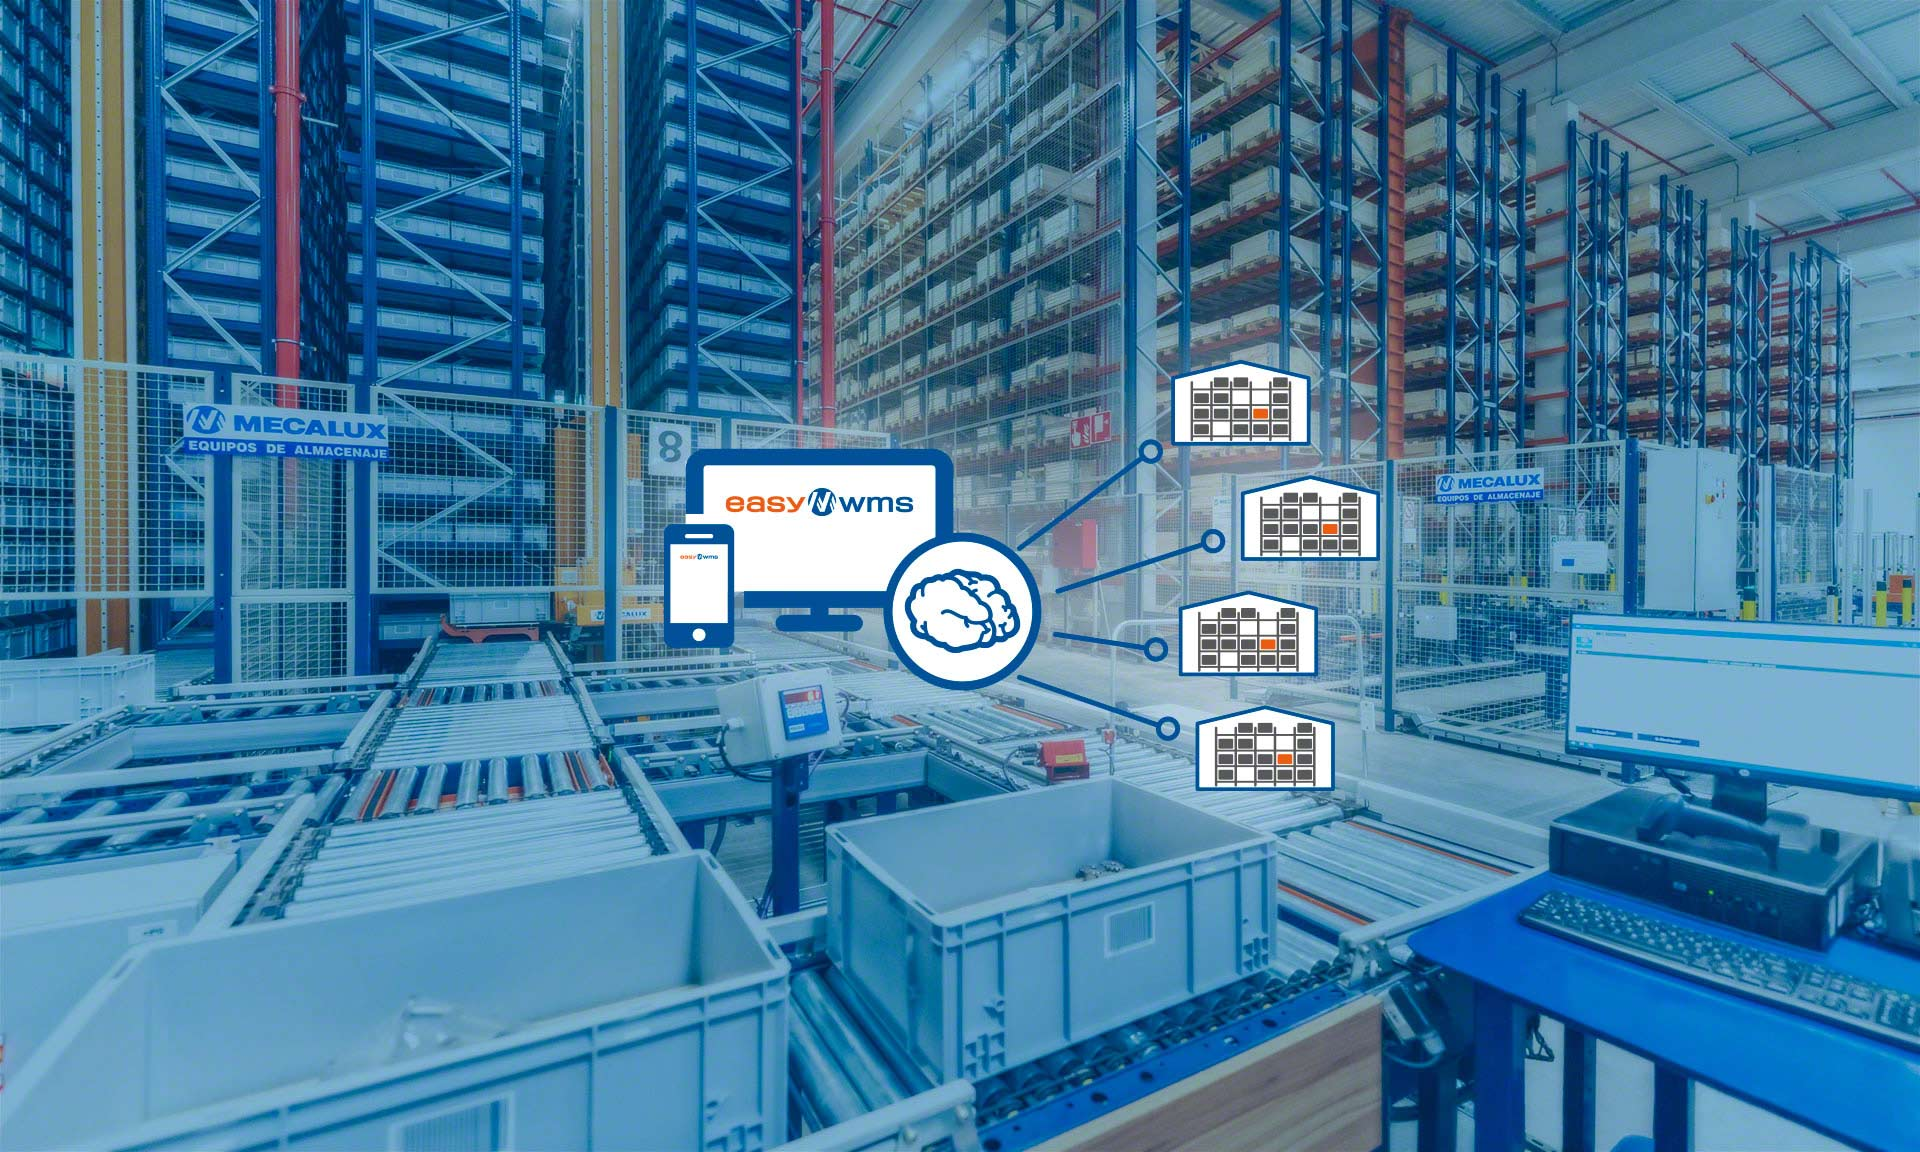 Multi-location inventory management refers to the management of multiple warehouses belonging to a single company